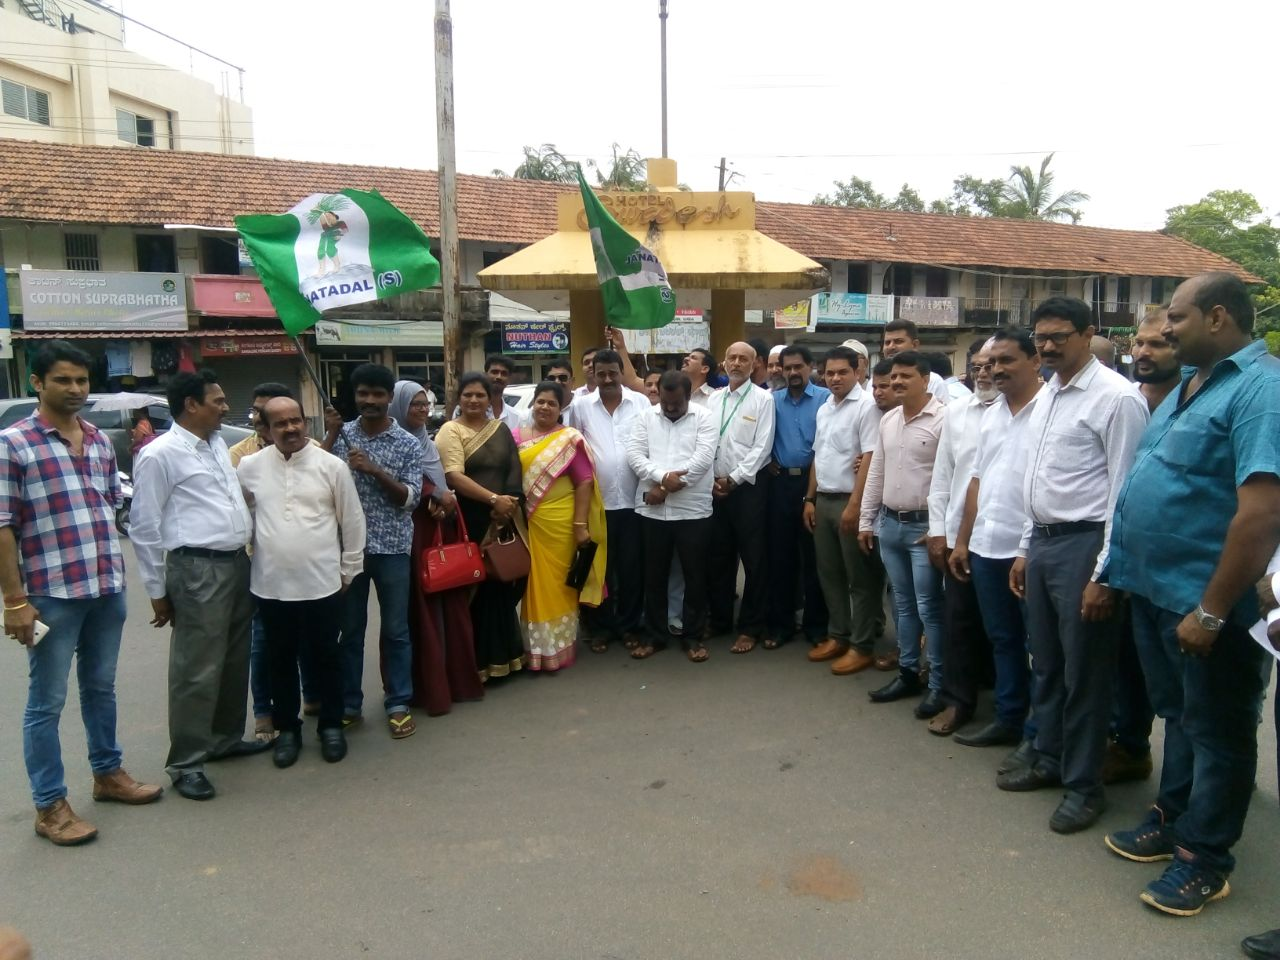 District JD(S) celebrates victory of Boje Gowda in MLC election